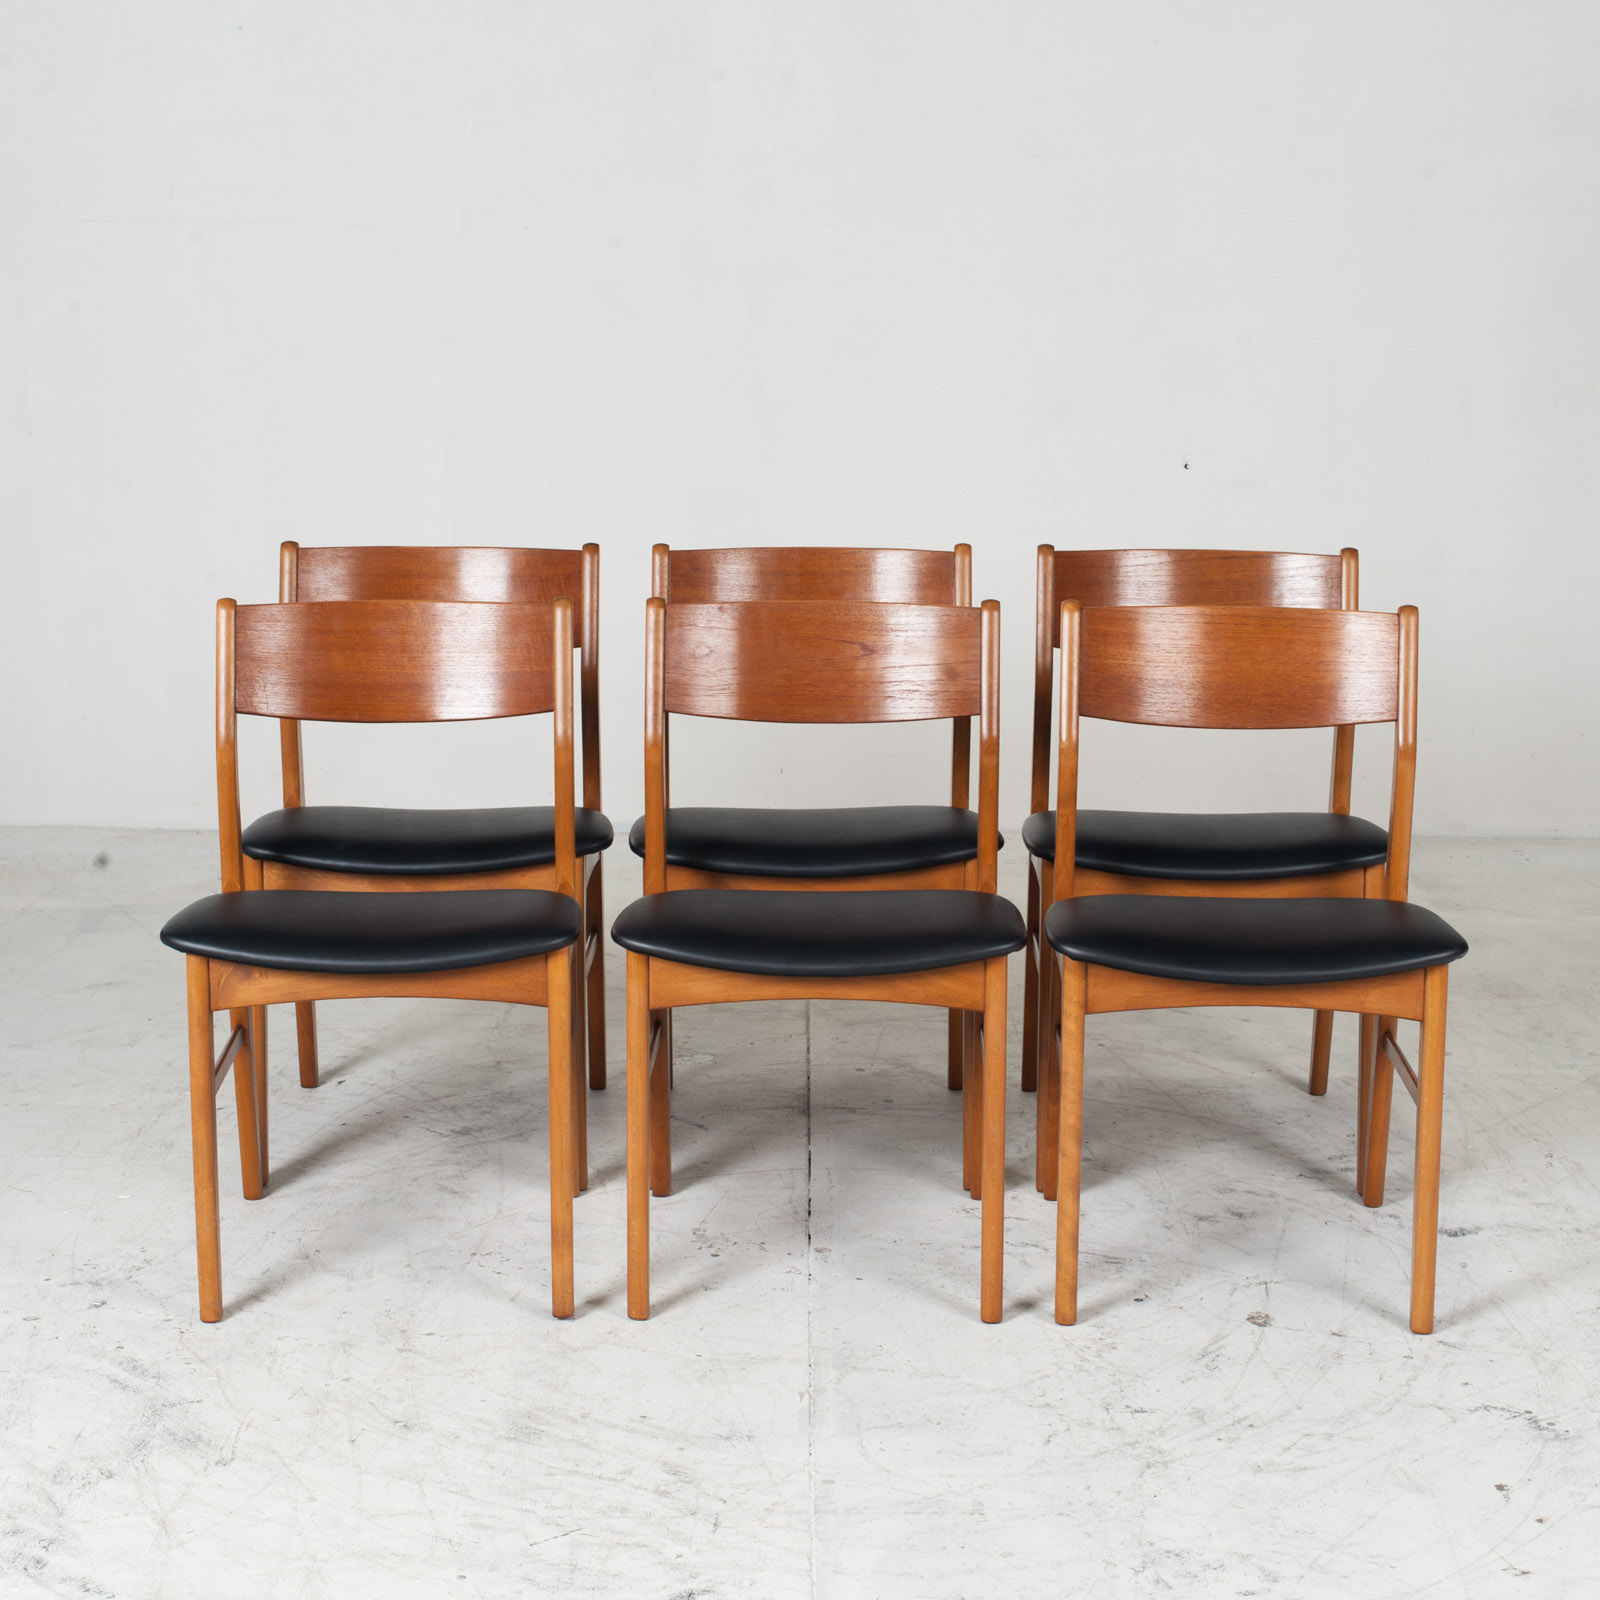 Set 6 Dining Chairs In The Style Of Erik Buch In Teak 1960s Denmark 012